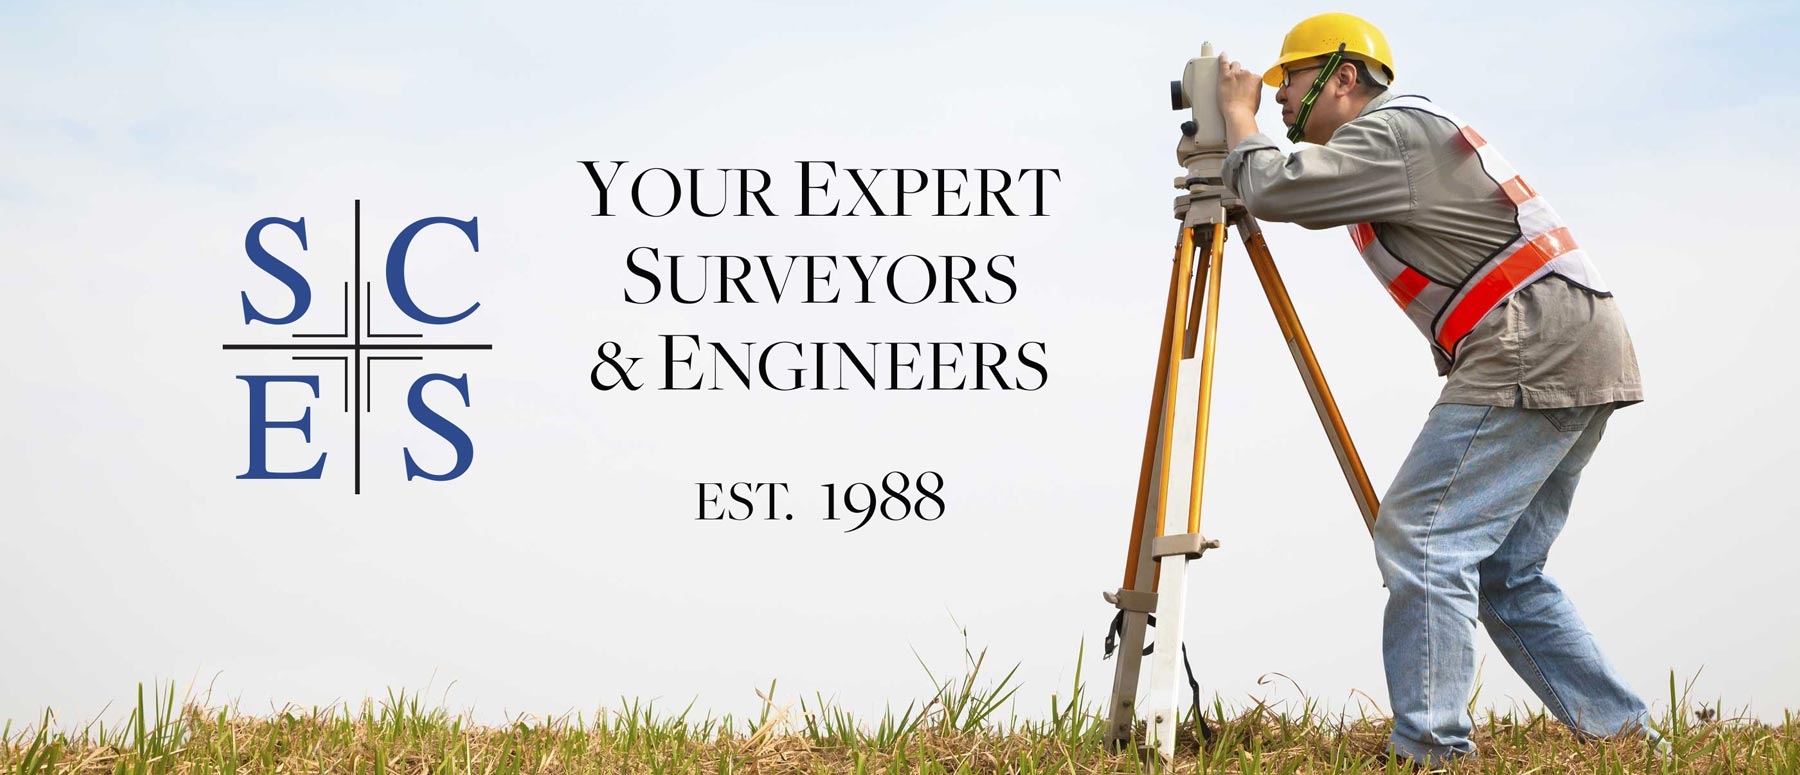 Expert Surveyors and Engineers in St. Charles Missouri